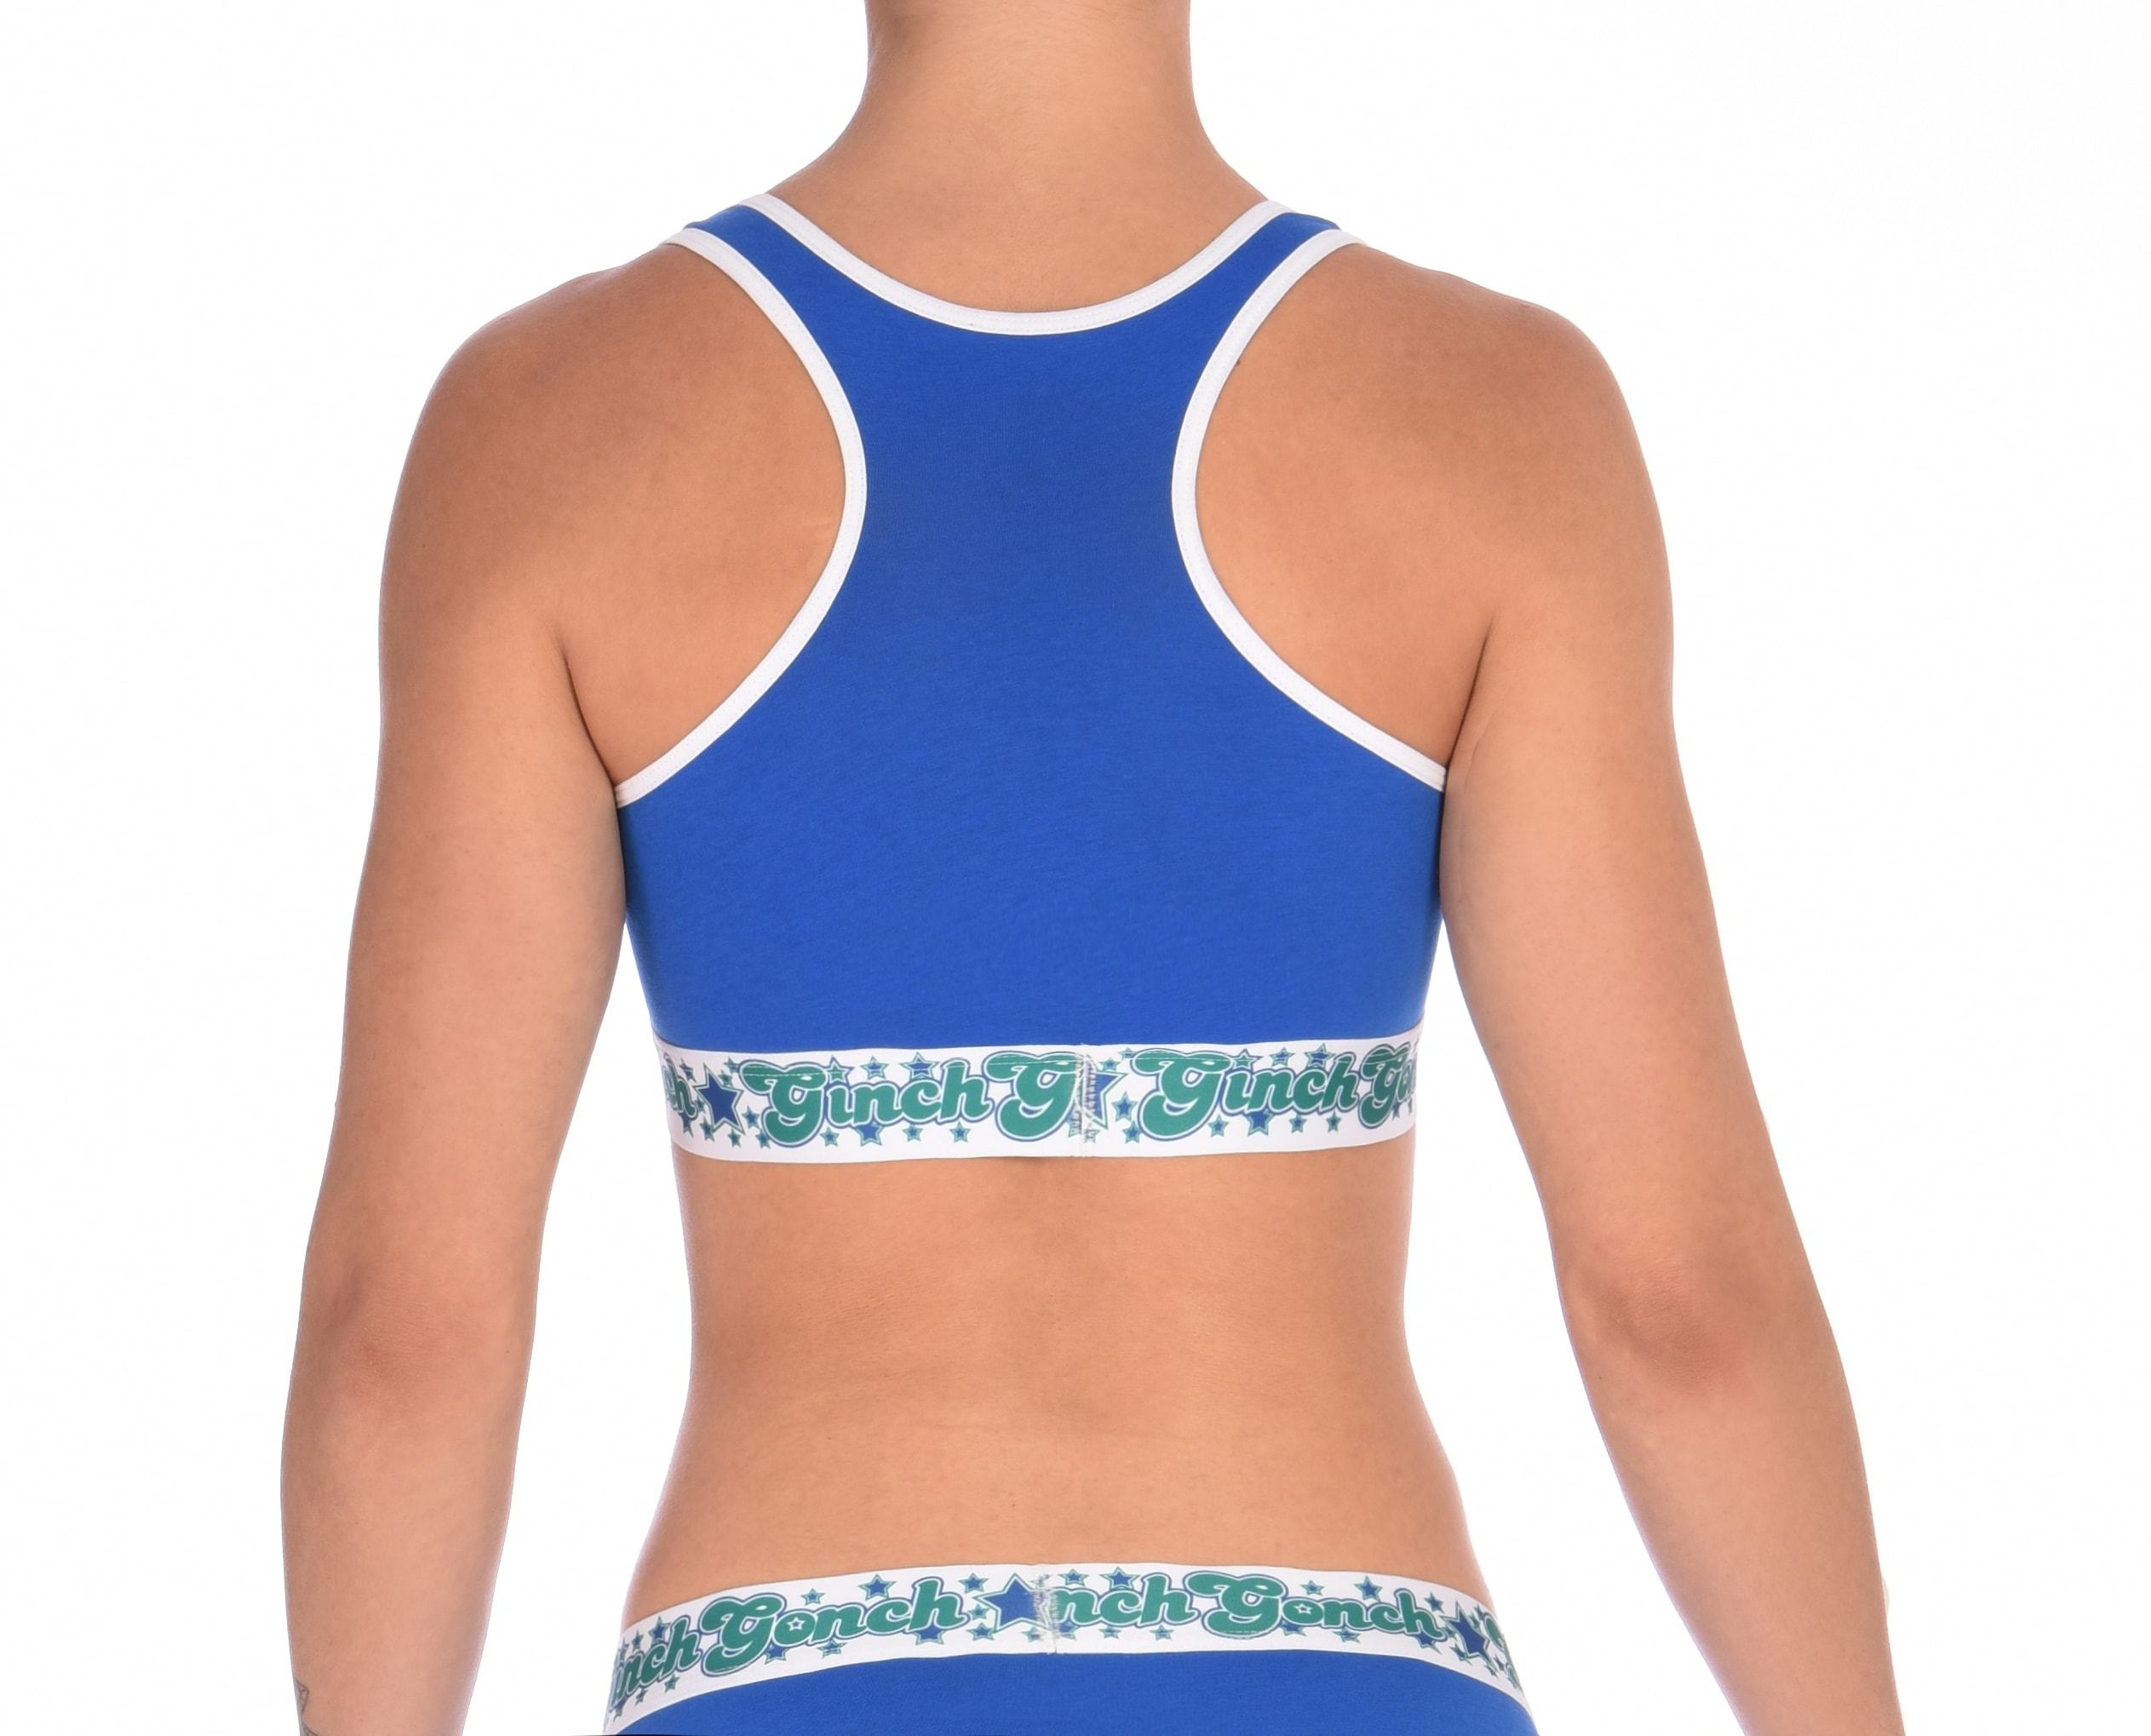 Blue Lagoon Sports Bra